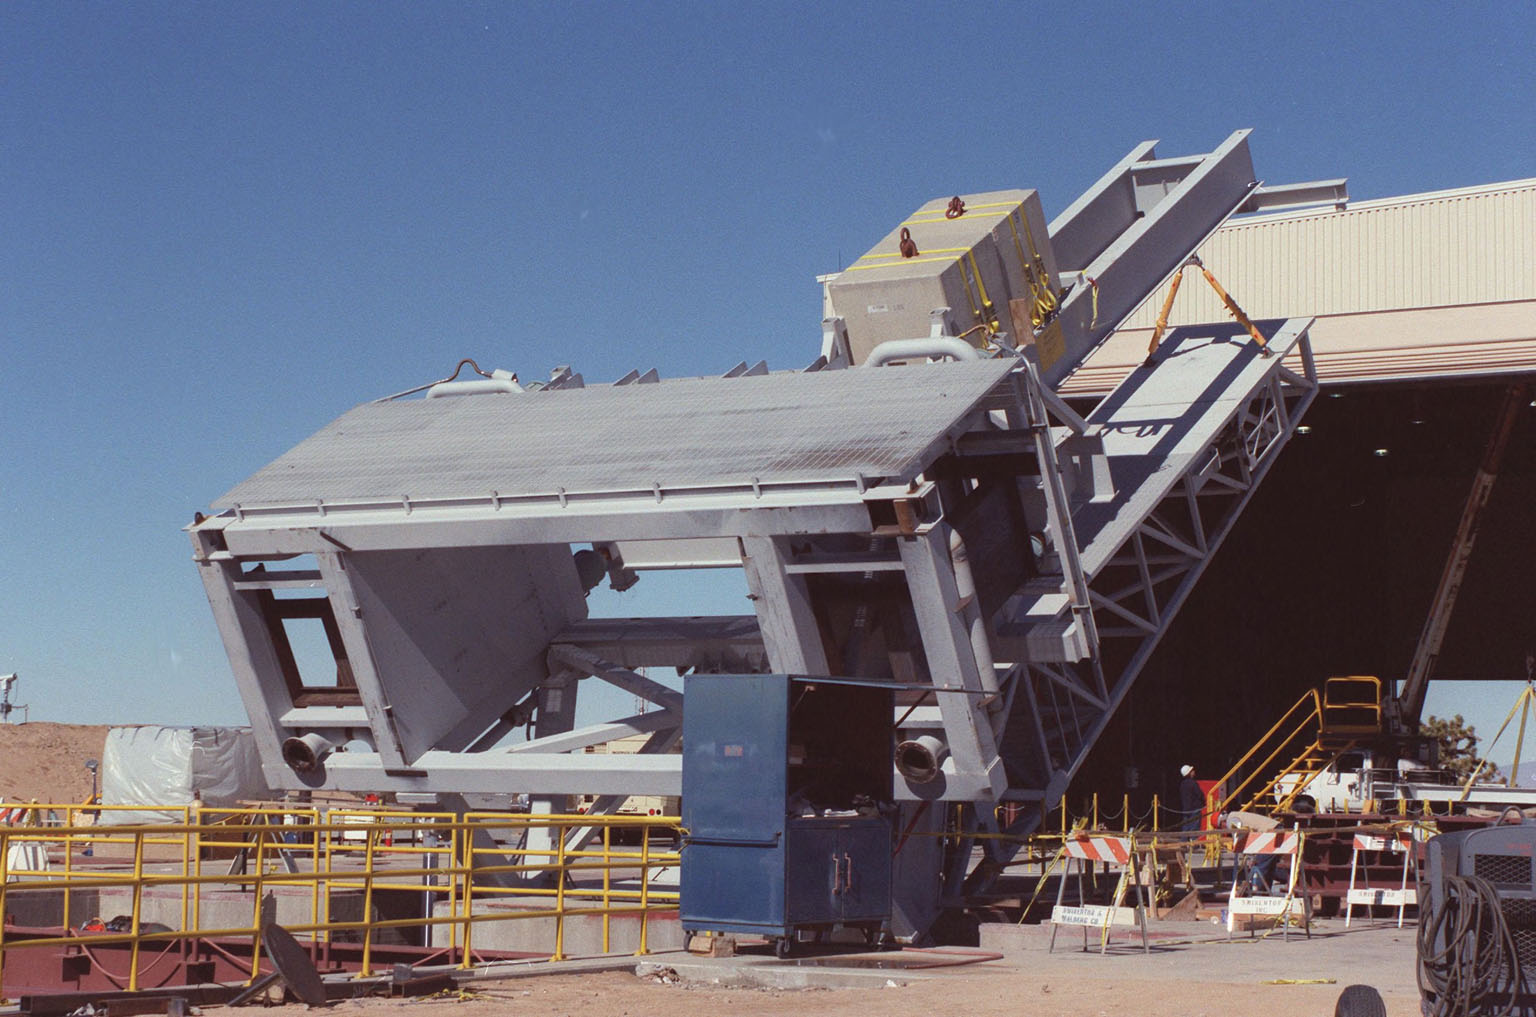 """The KSC-developed X-33 weight simulator (top), known as the """"iron bird,"""" is lifted to a vertical position at the X-33 launch site as part of launch equipment testing on Edwards Air Force Base, CA. The simulator matches the 75,000-pound weight and 63-foot height of the X-33 vehicle that will be using the launch equipment. KSC's Vehicle Positioning System (VPS) placed the simulator on the rotating launch platform prior to the rotation. The new VPS will dramatically reduce the amount of manual labor required to position a reusable launch vehicle for liftoff"""